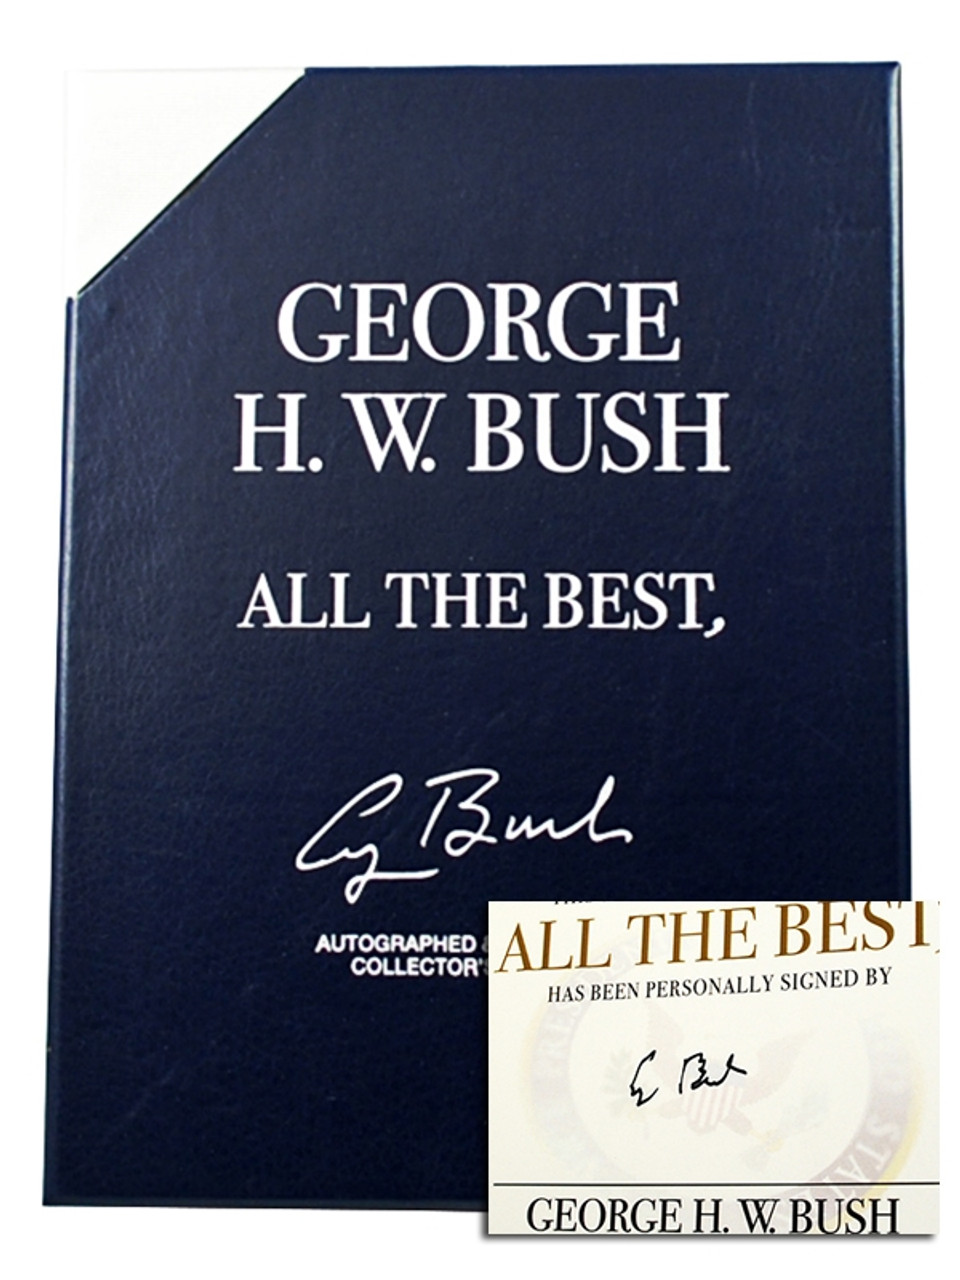 "George HW Bush ""All The Best, George Bush"" Signed Limited Edition of only 1,000 with COA"